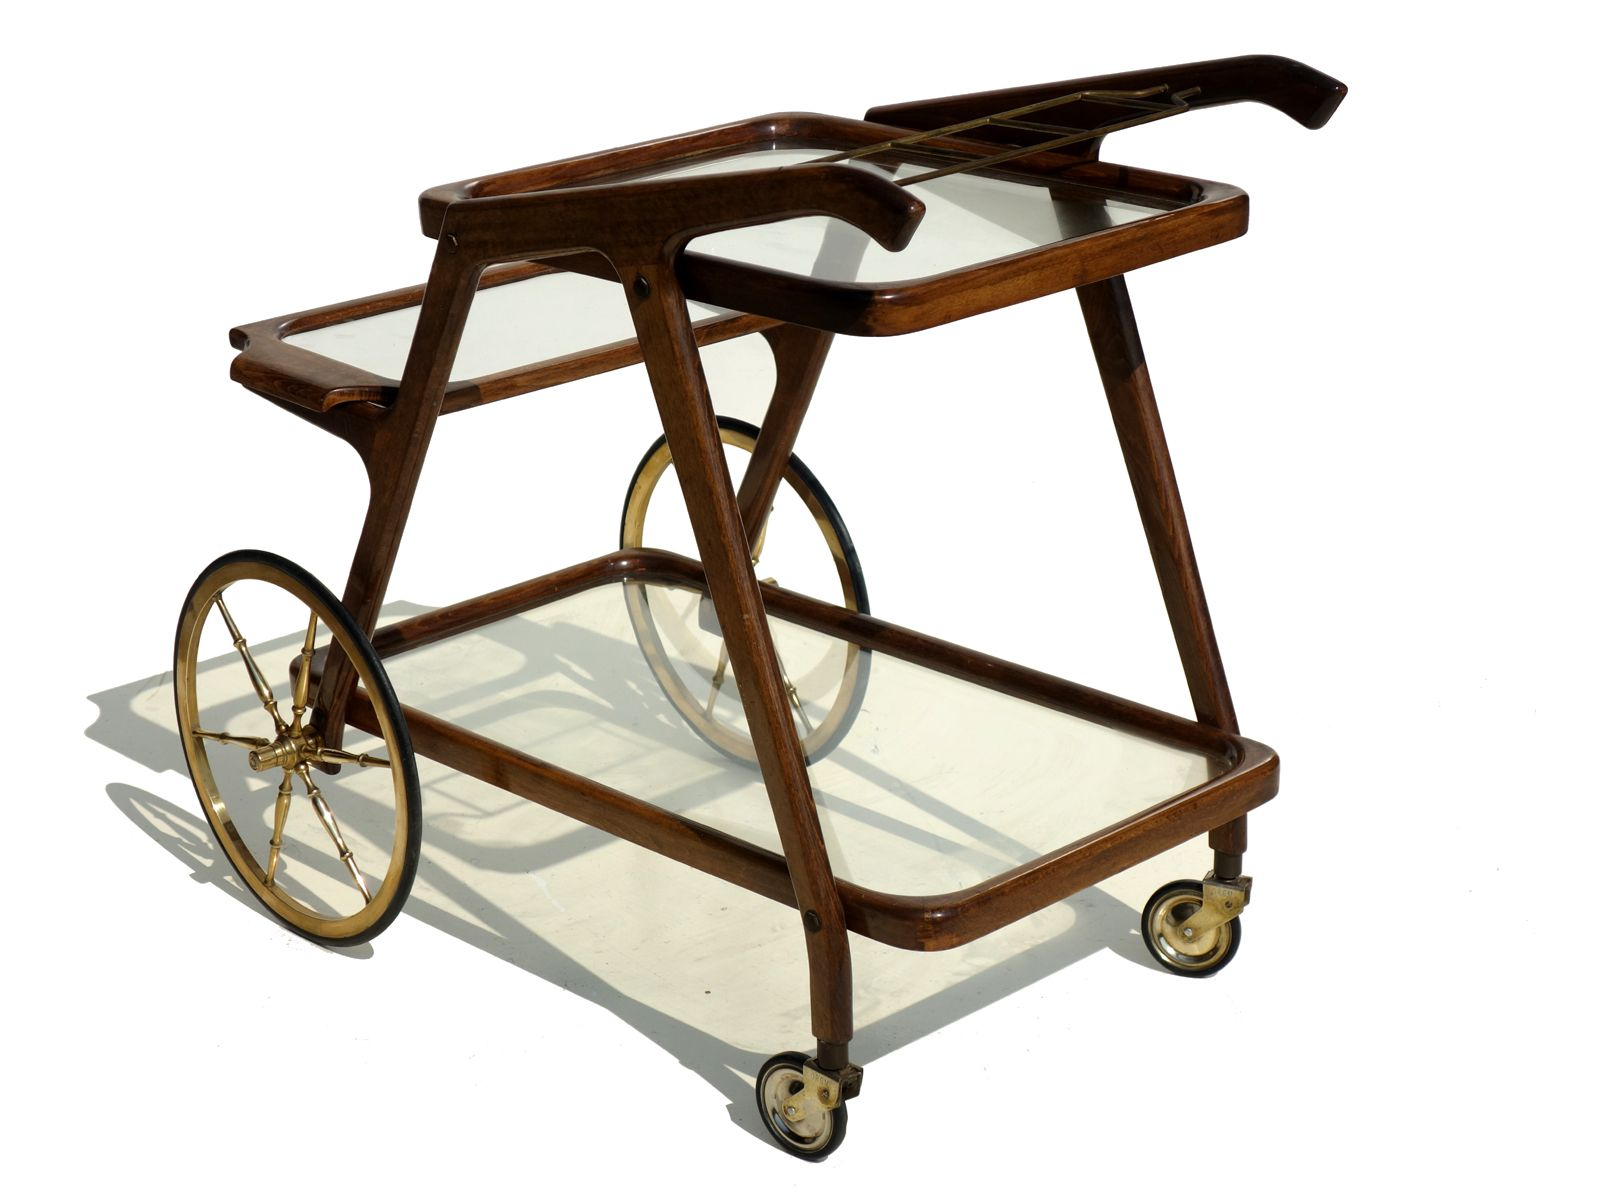 italian mid century bar cart trolley 1950s for sale at pamono. Black Bedroom Furniture Sets. Home Design Ideas